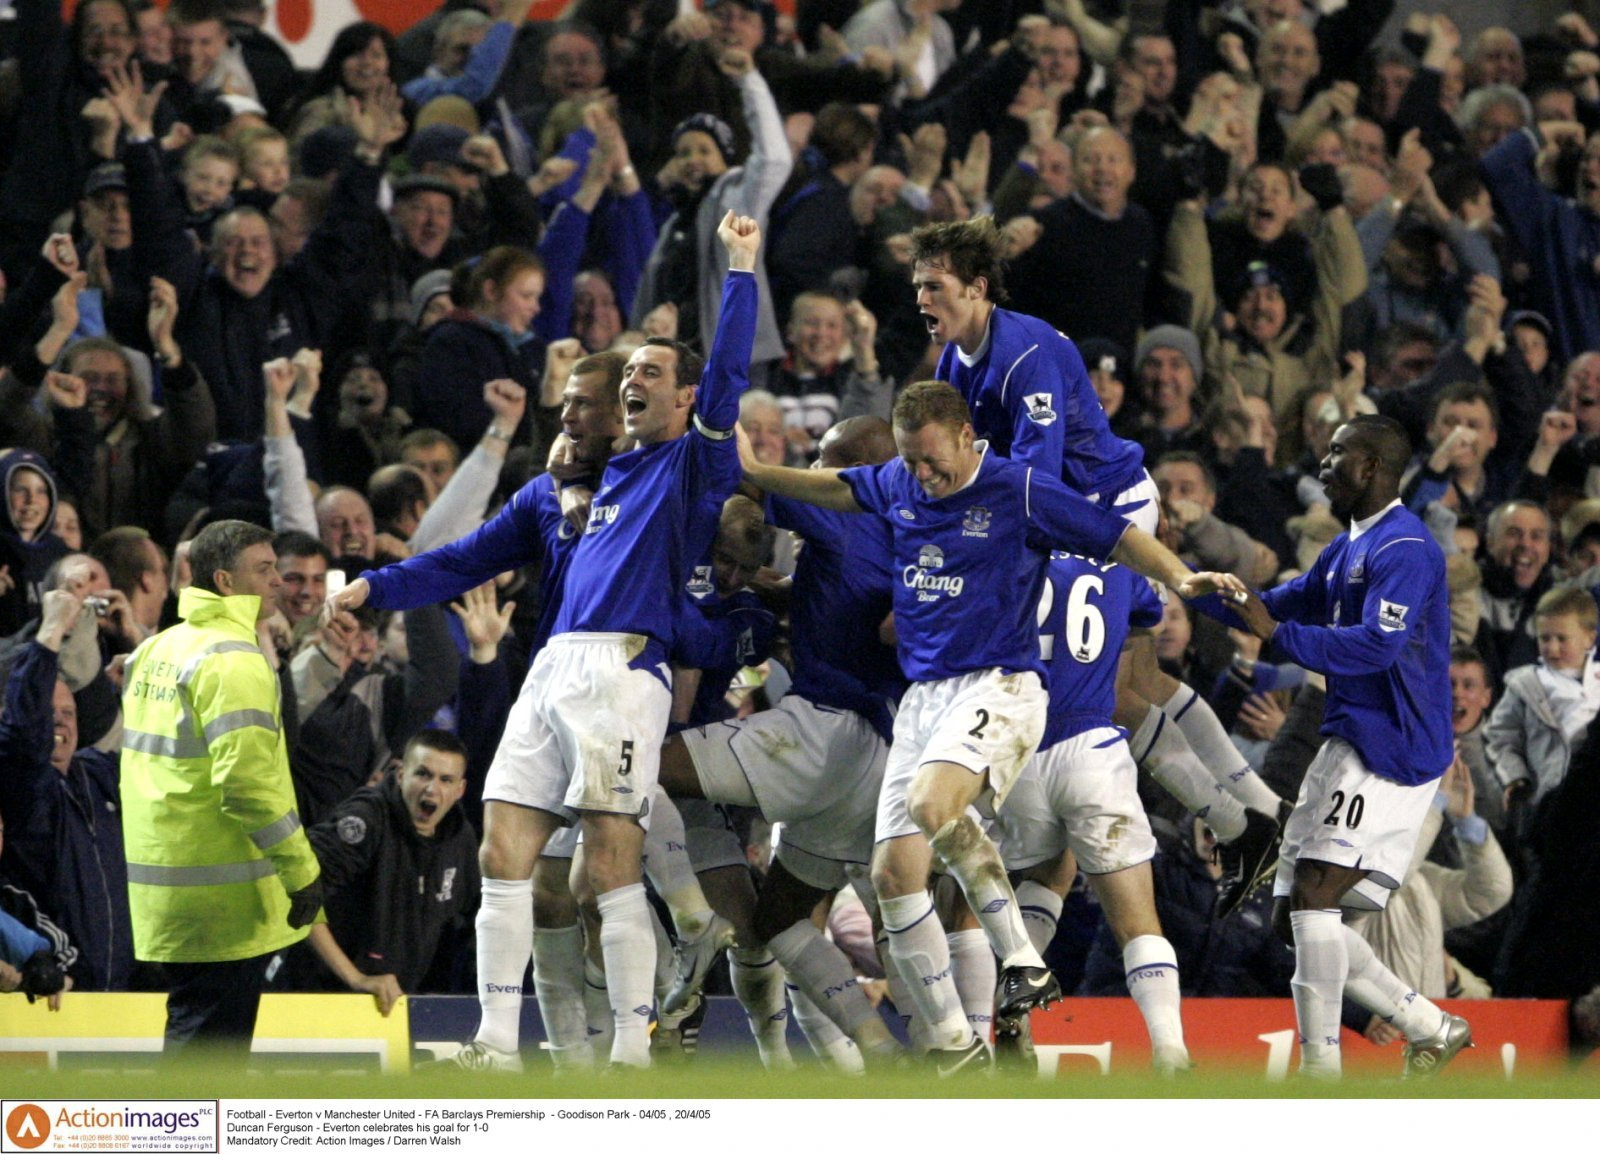 Everton: Fans look back on famous win vs Manchester United